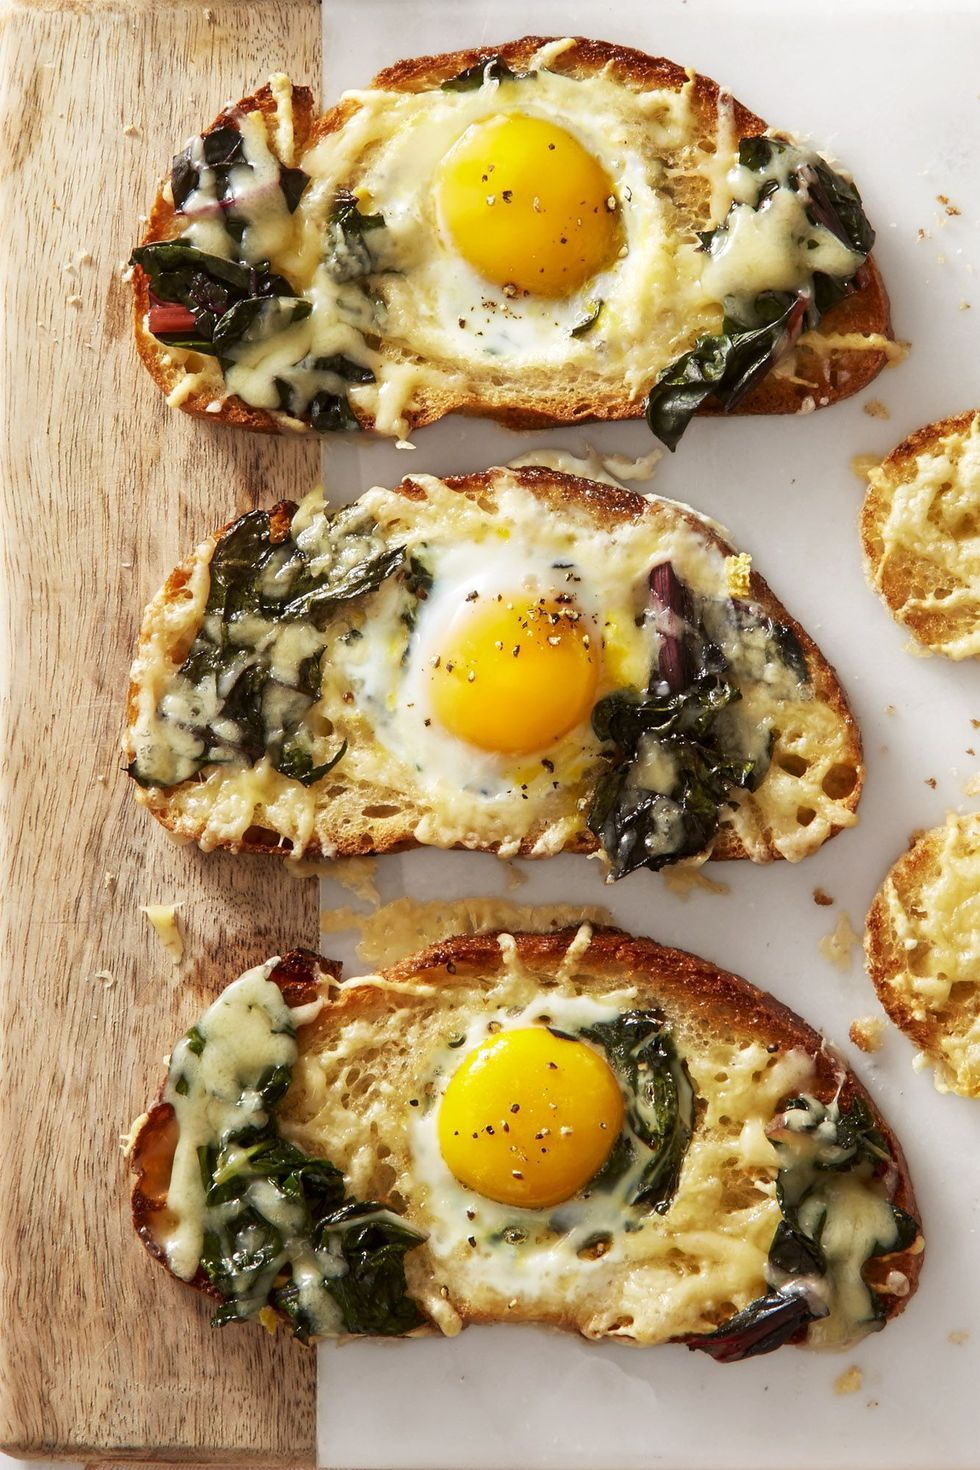 Chard Gruyere Eggs In a Hole - Best Brunch Recipes